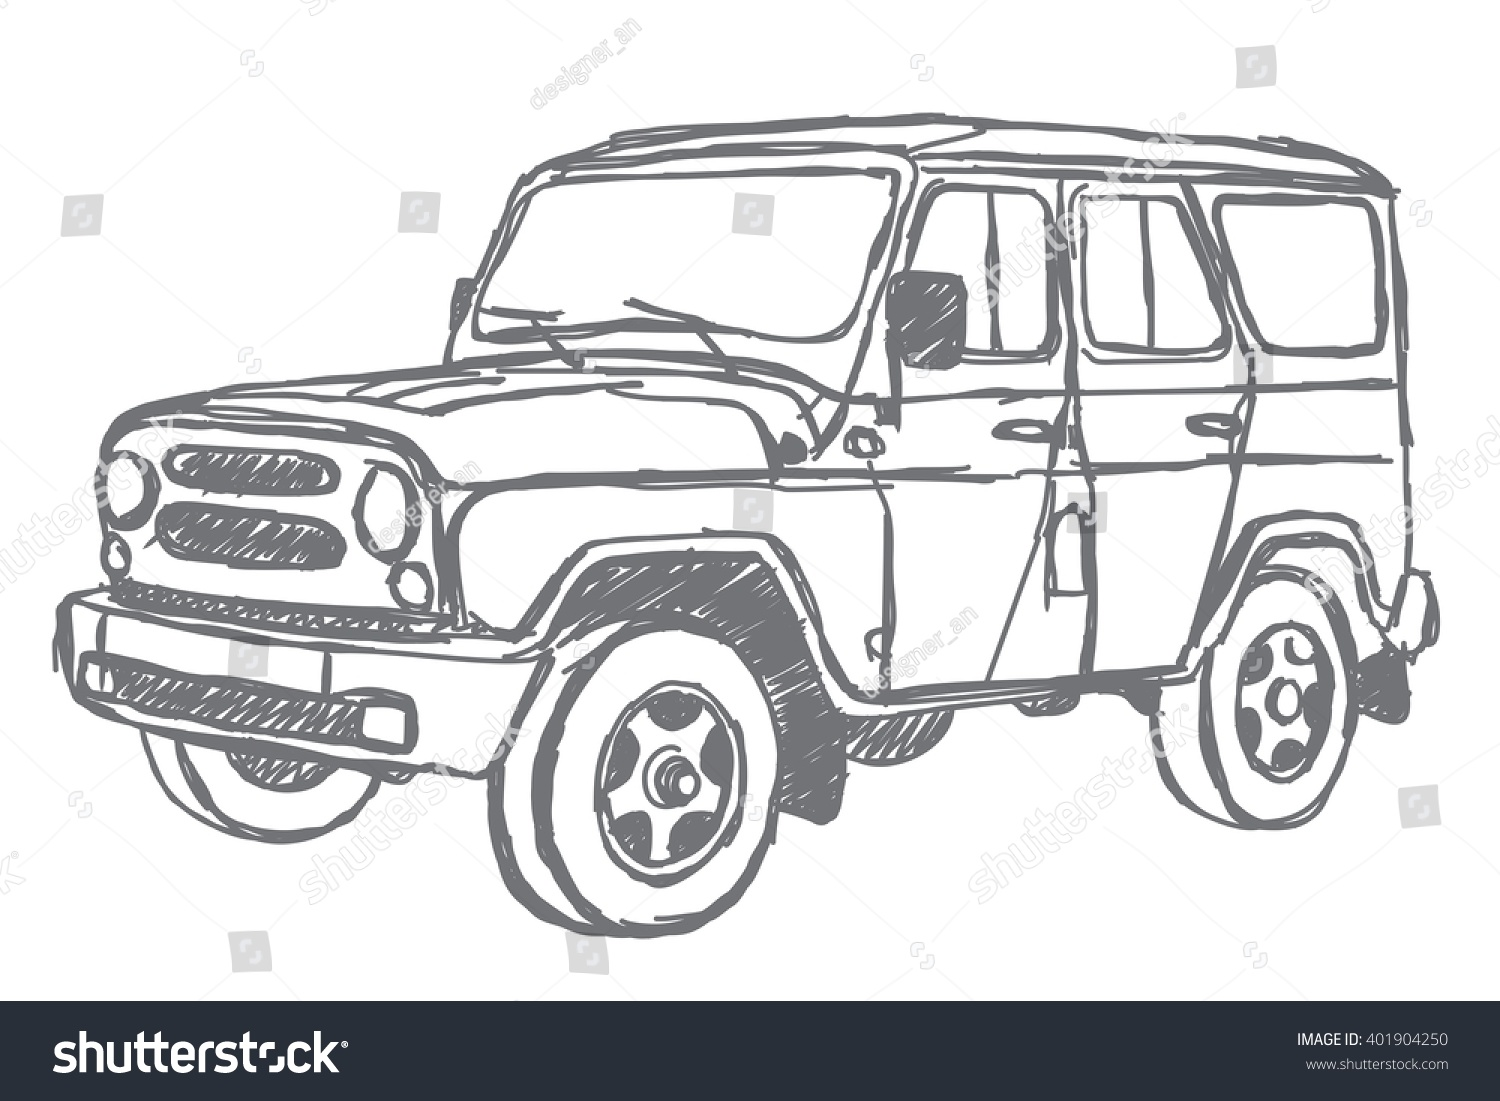 Suv Sketch Stock Illustration Shutterstock